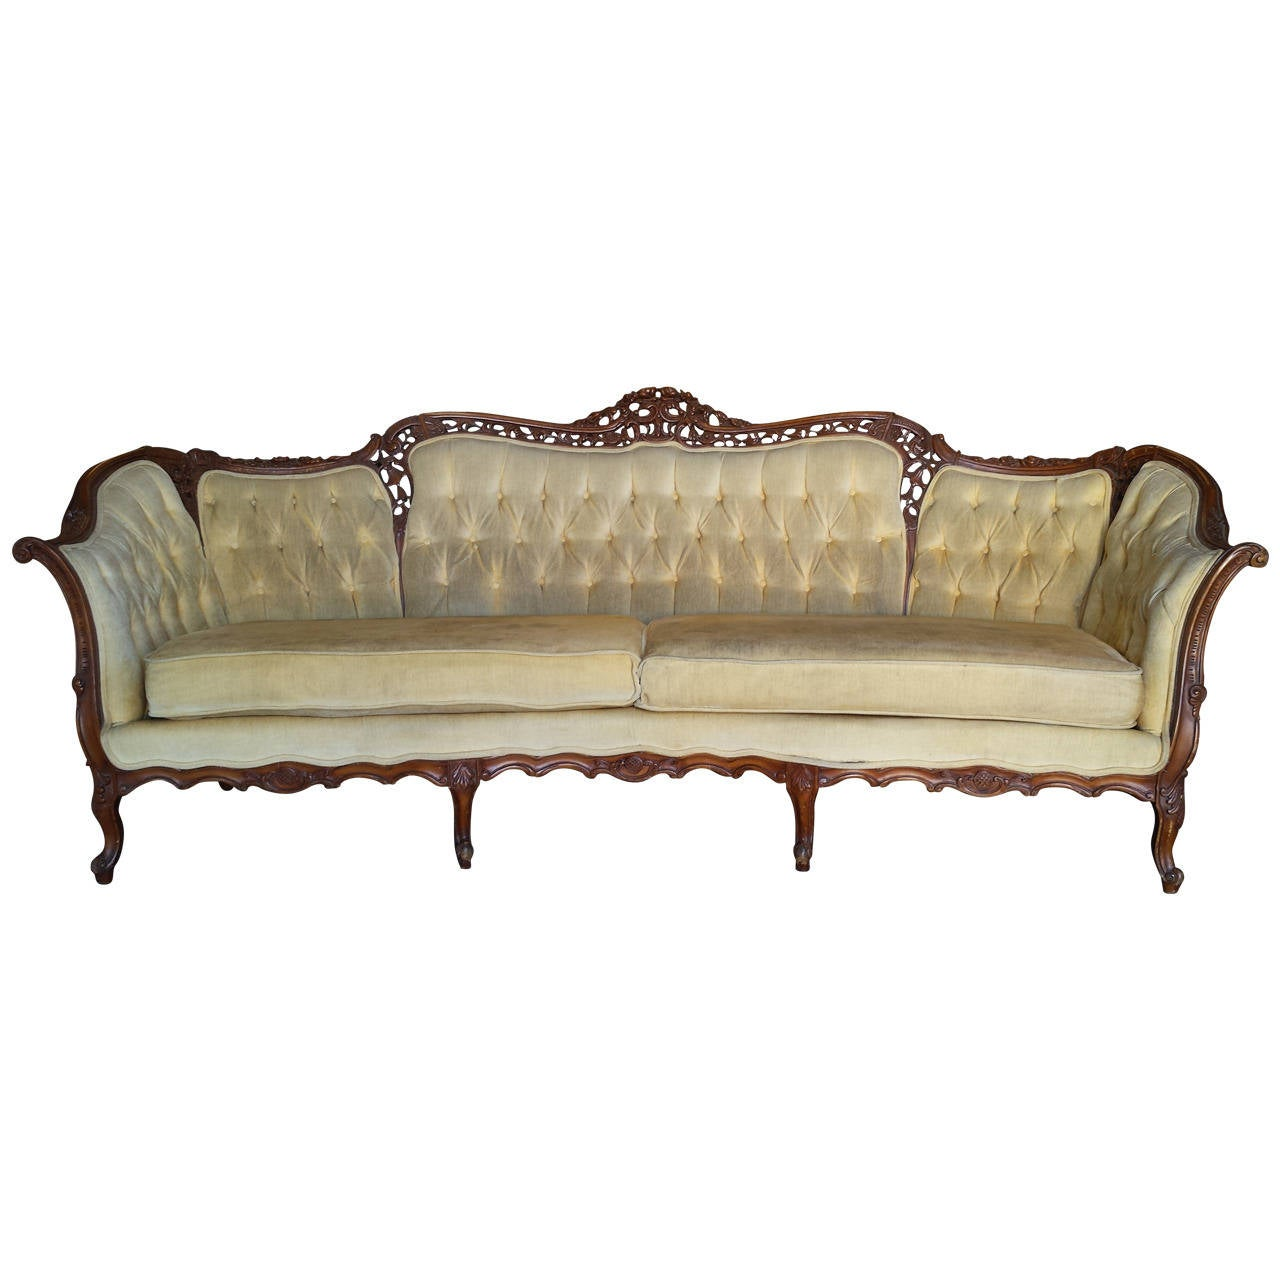 French sofa french louis xv style full size tufted sofa for French divan chair